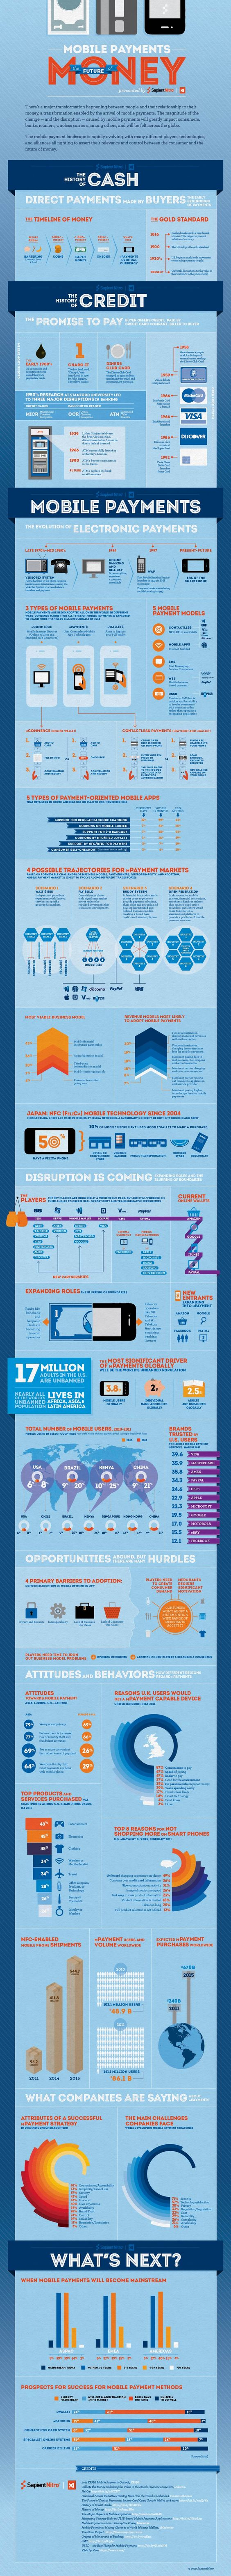 The future of money is mobile.